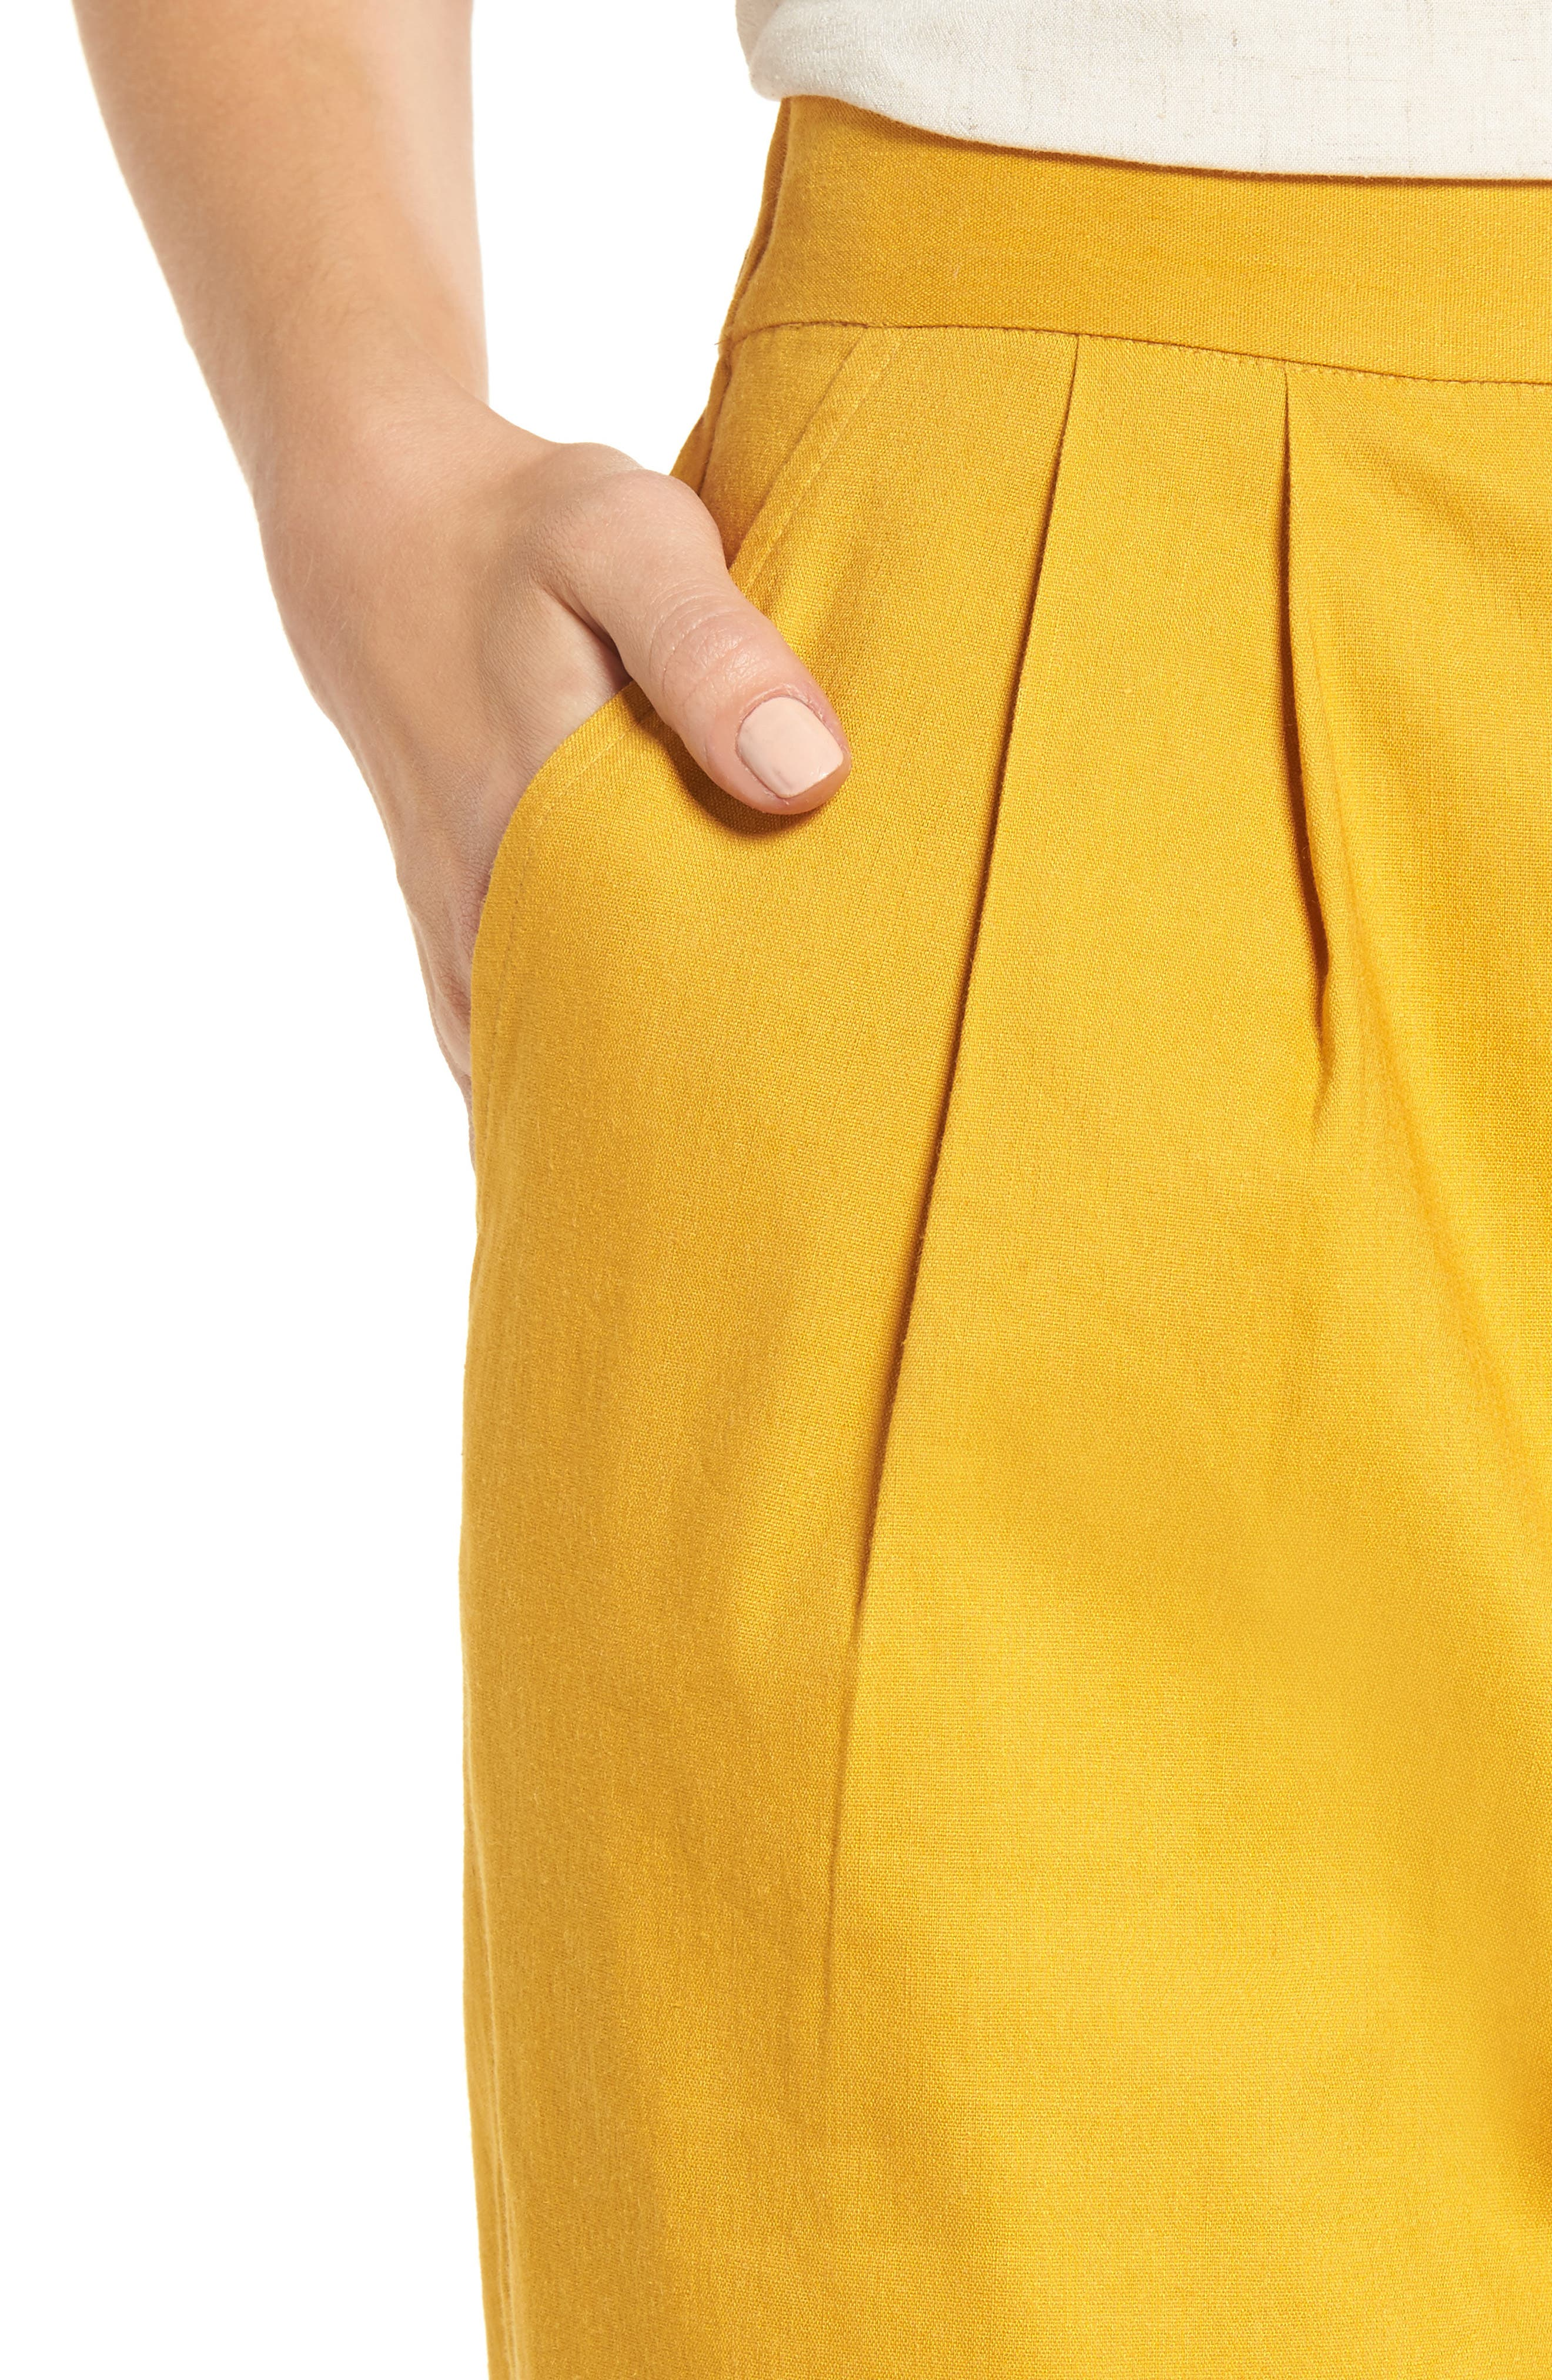 Pleat Front Crop Pants,                             Alternate thumbnail 4, color,                             Yellow Mineral